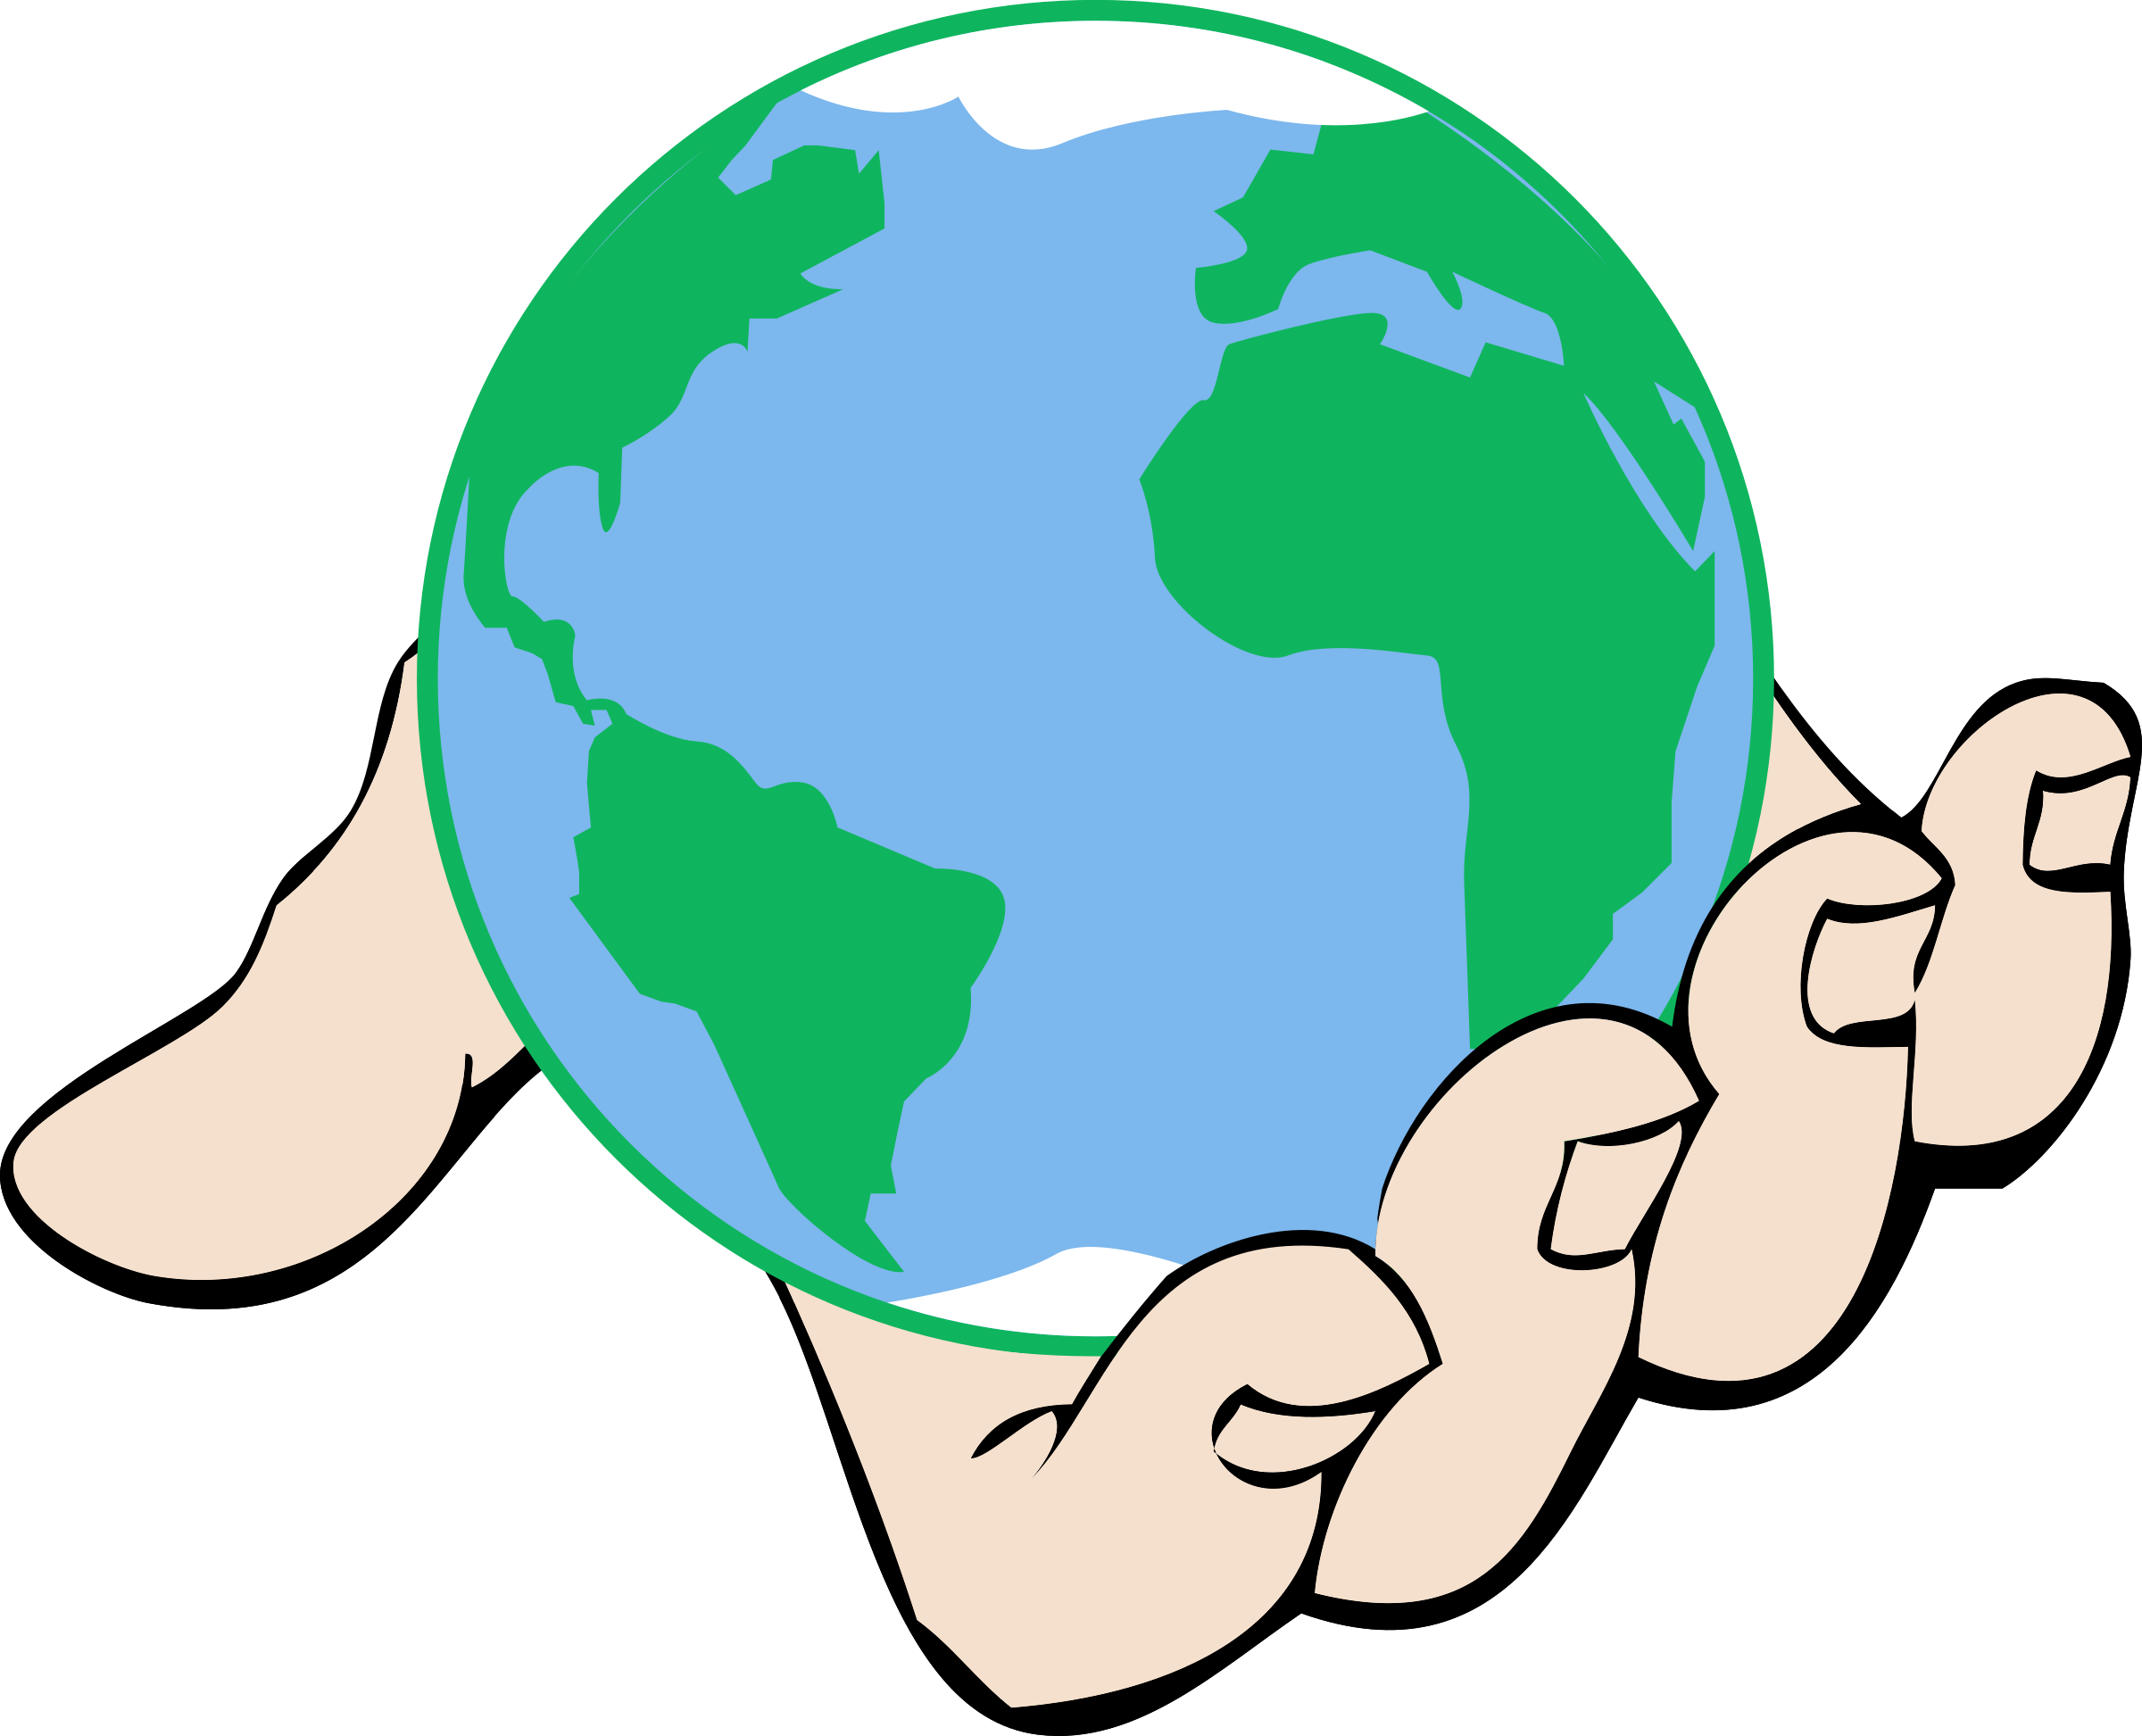 clipart world in hand rh openclipart org free clipart of the world clipart of the world map